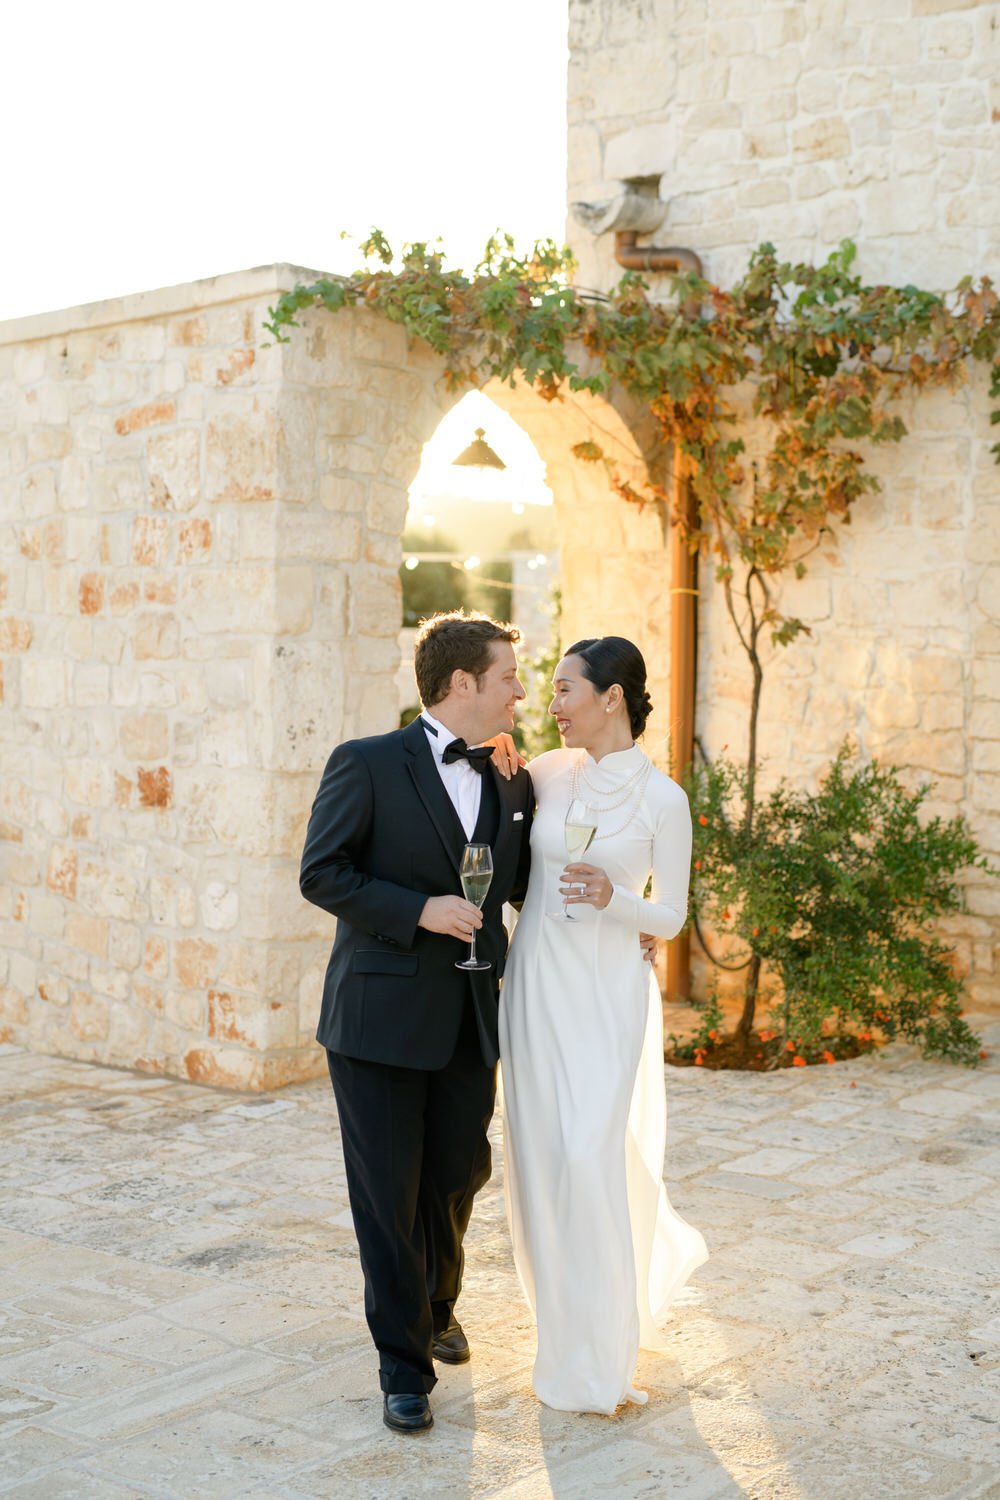 engagement-in-ostuni-©bottega53-11.jpg